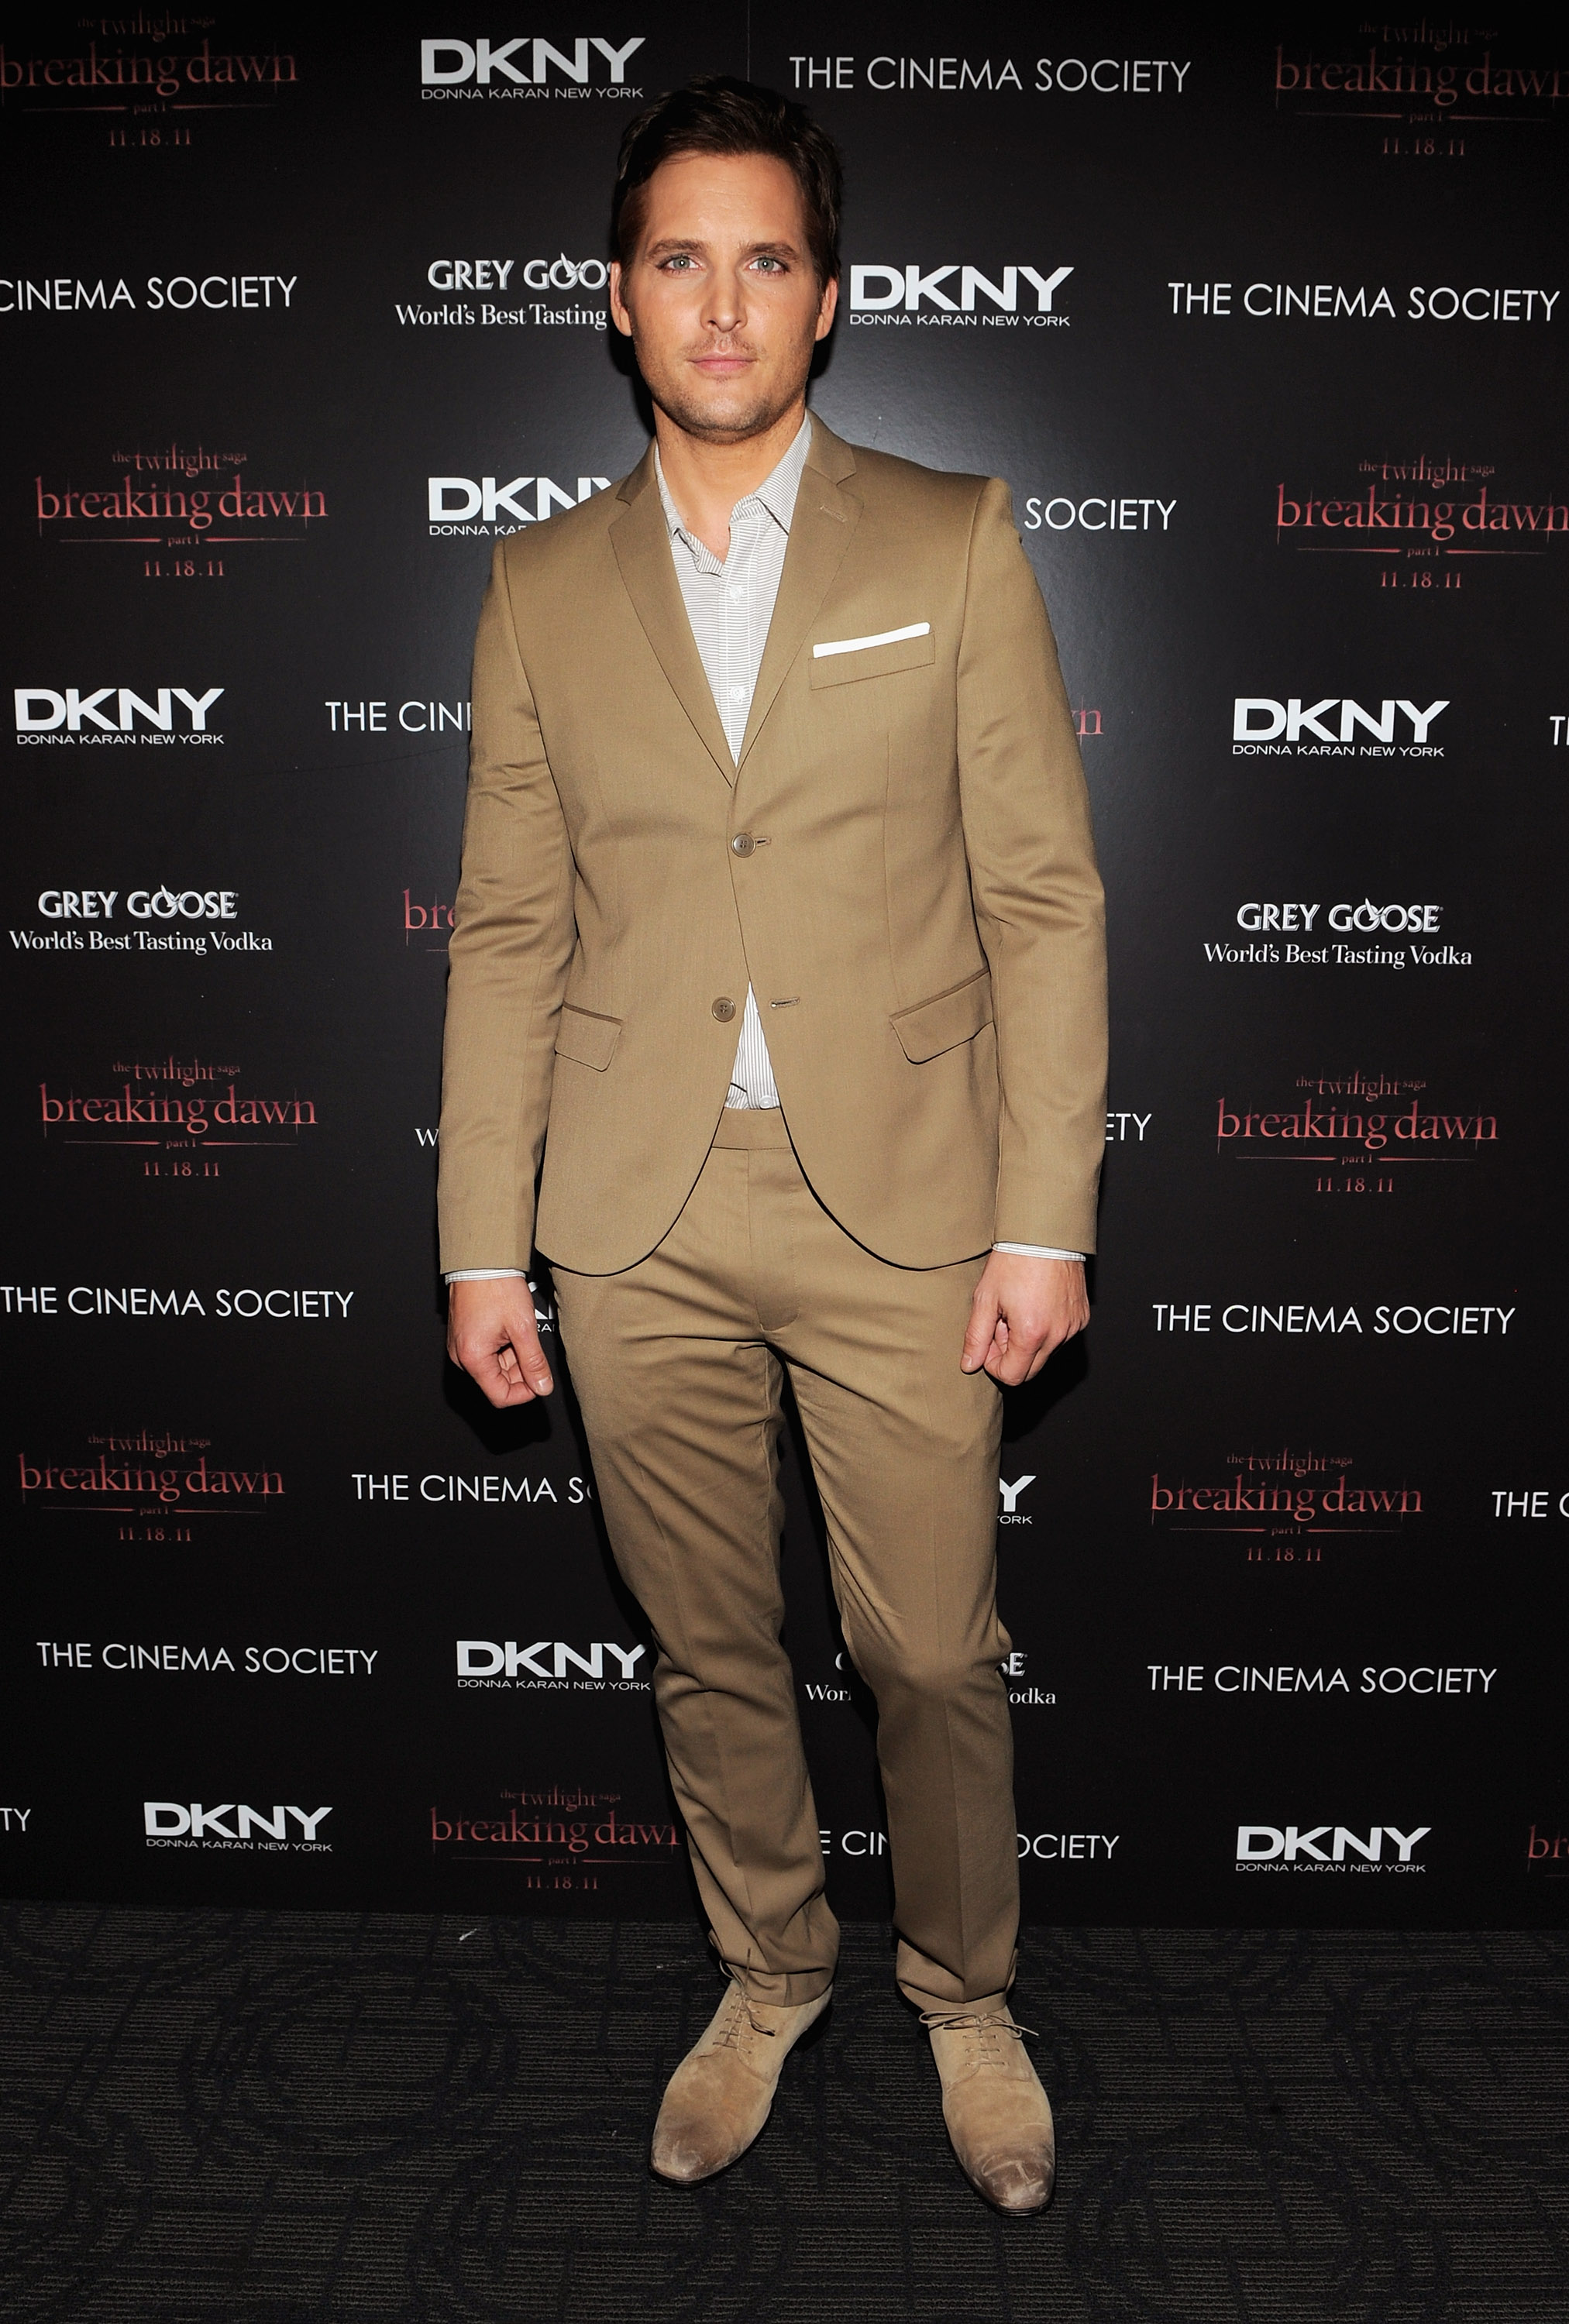 Peter Facinelli wore a slim suit to a screening of Breaking Dawn.